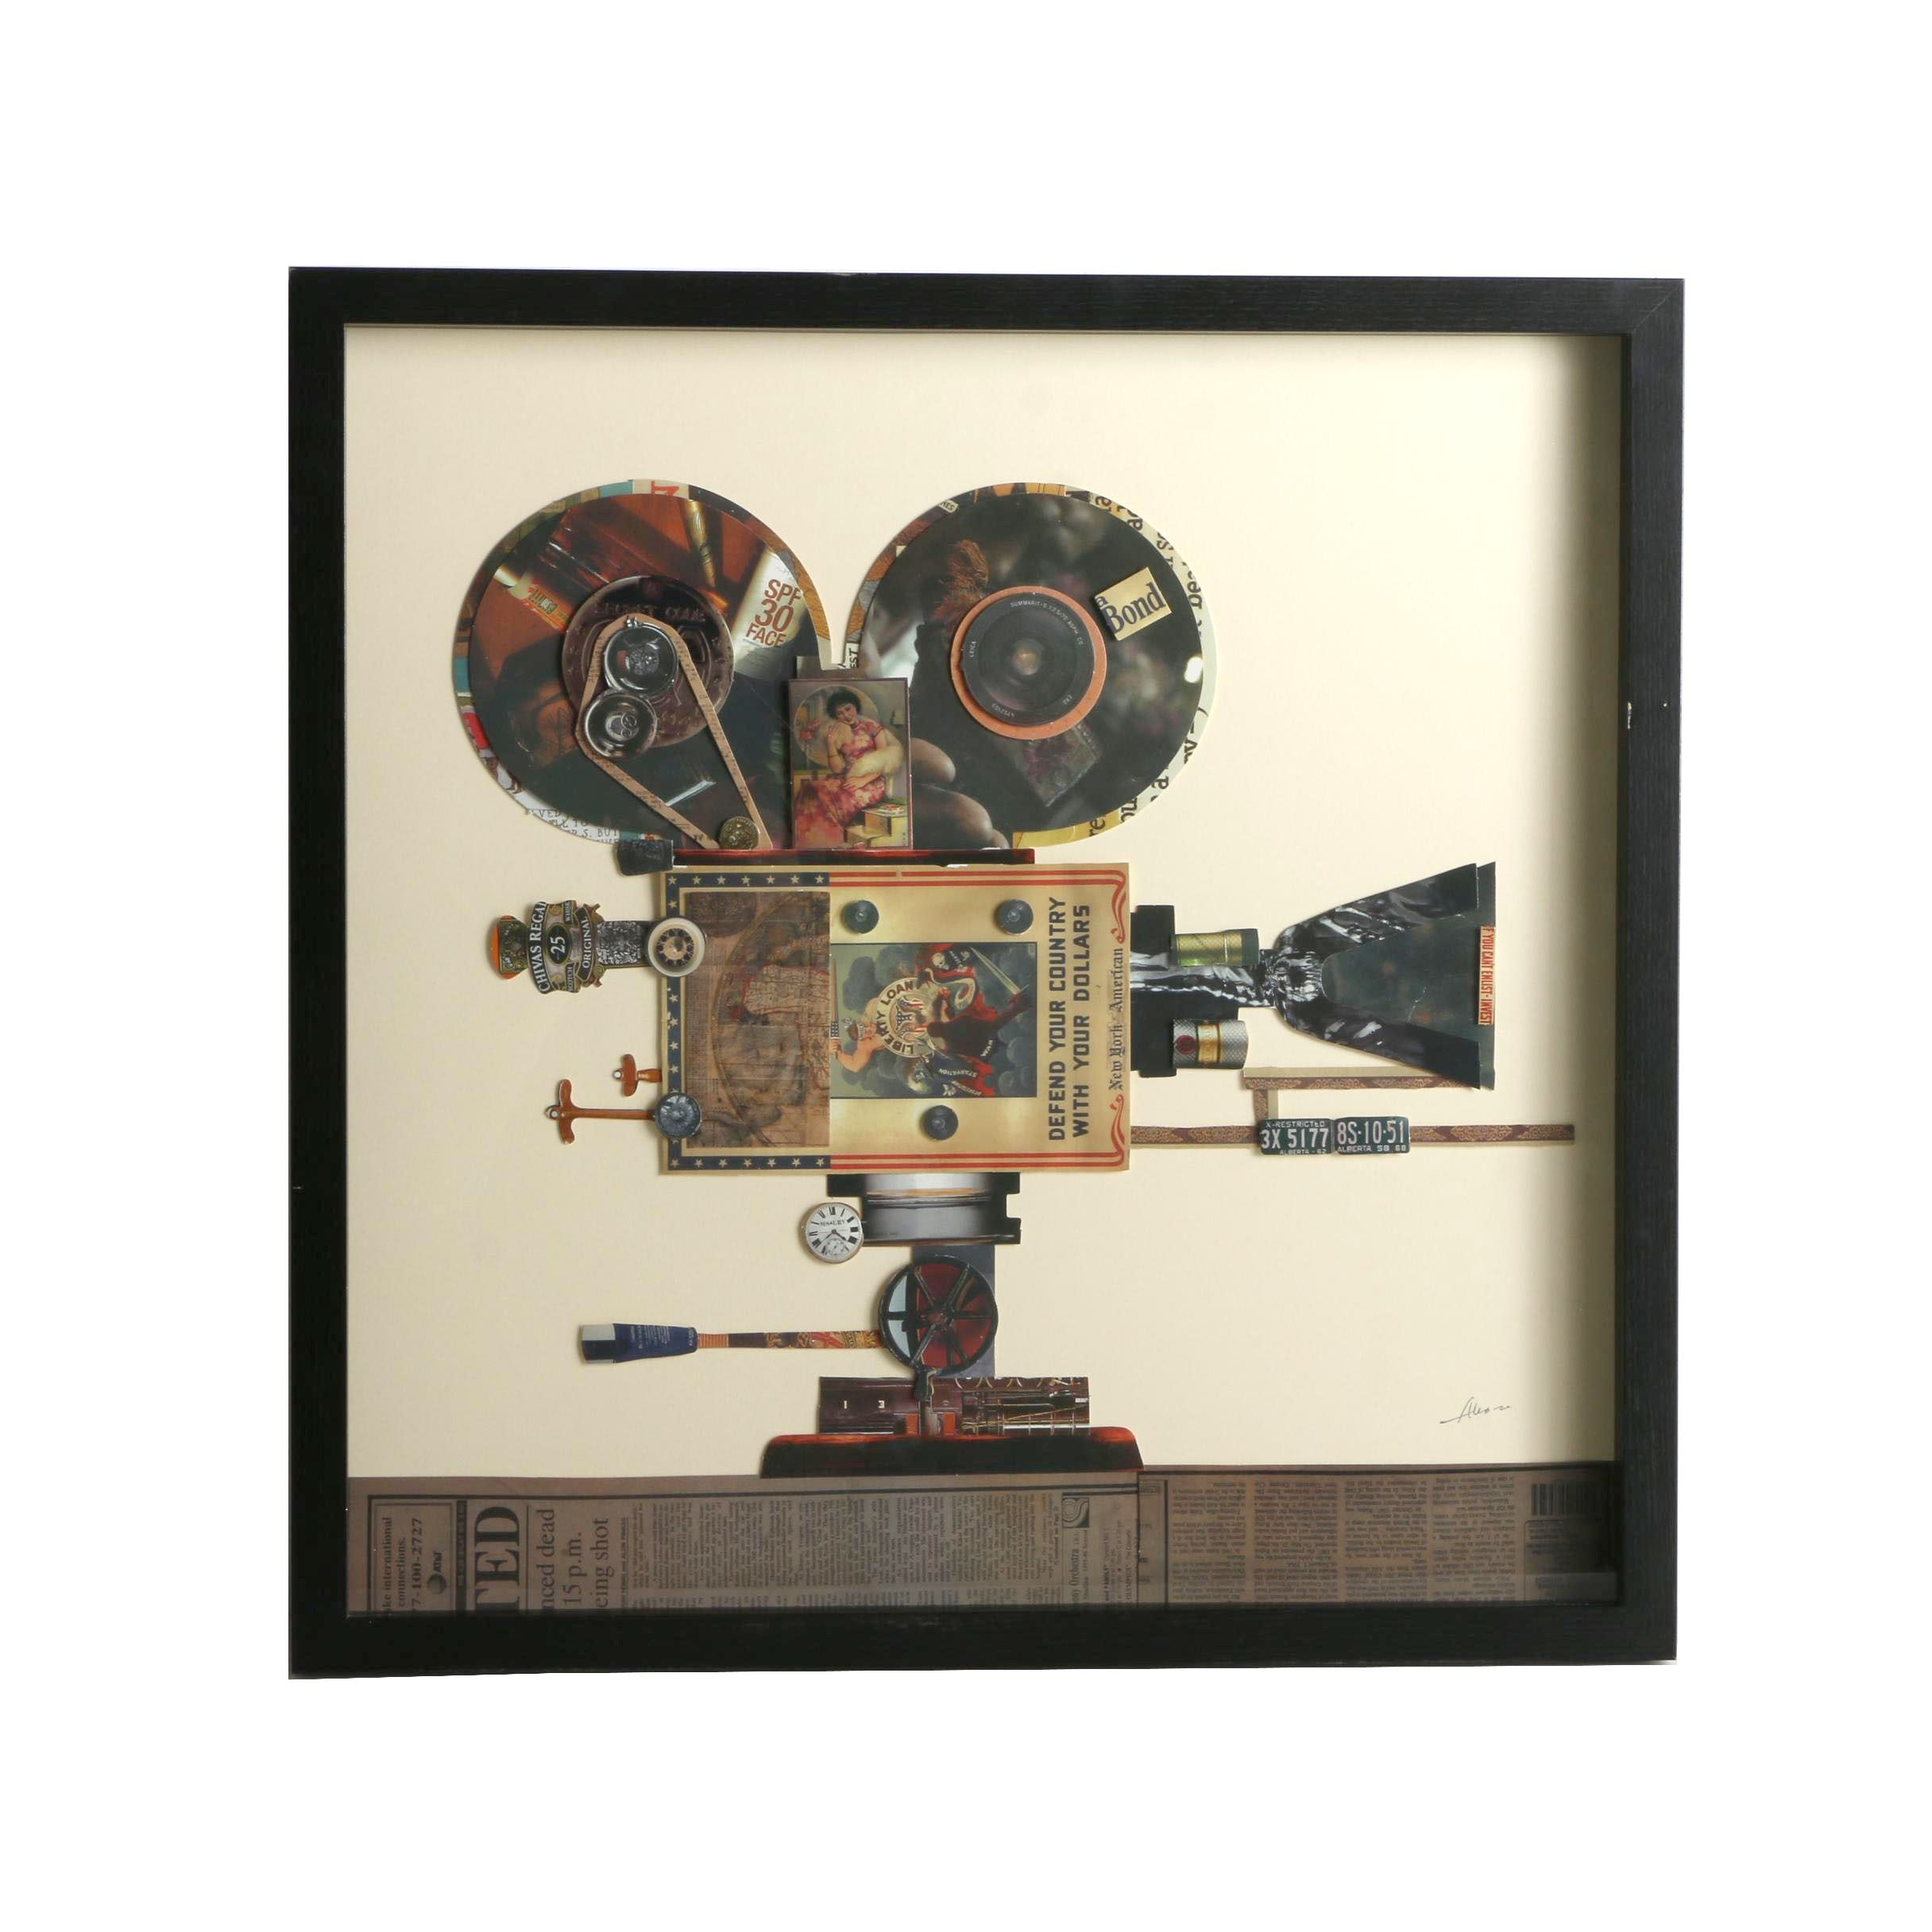 Mixed Media Print Collage of a Film Projector